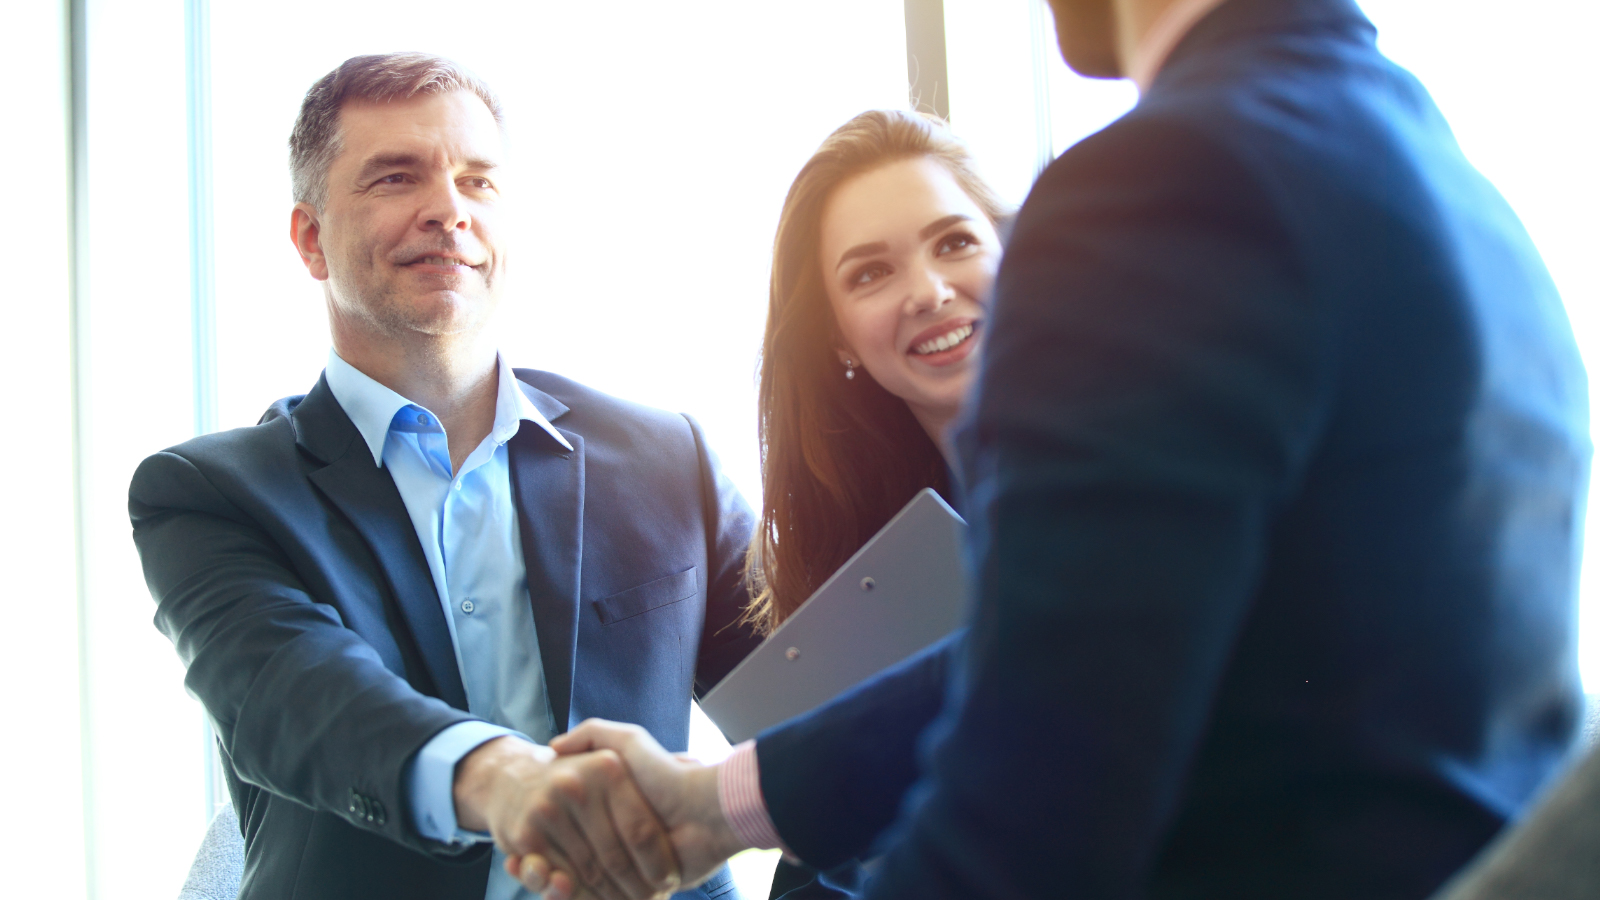 business man and woman shake hands with client